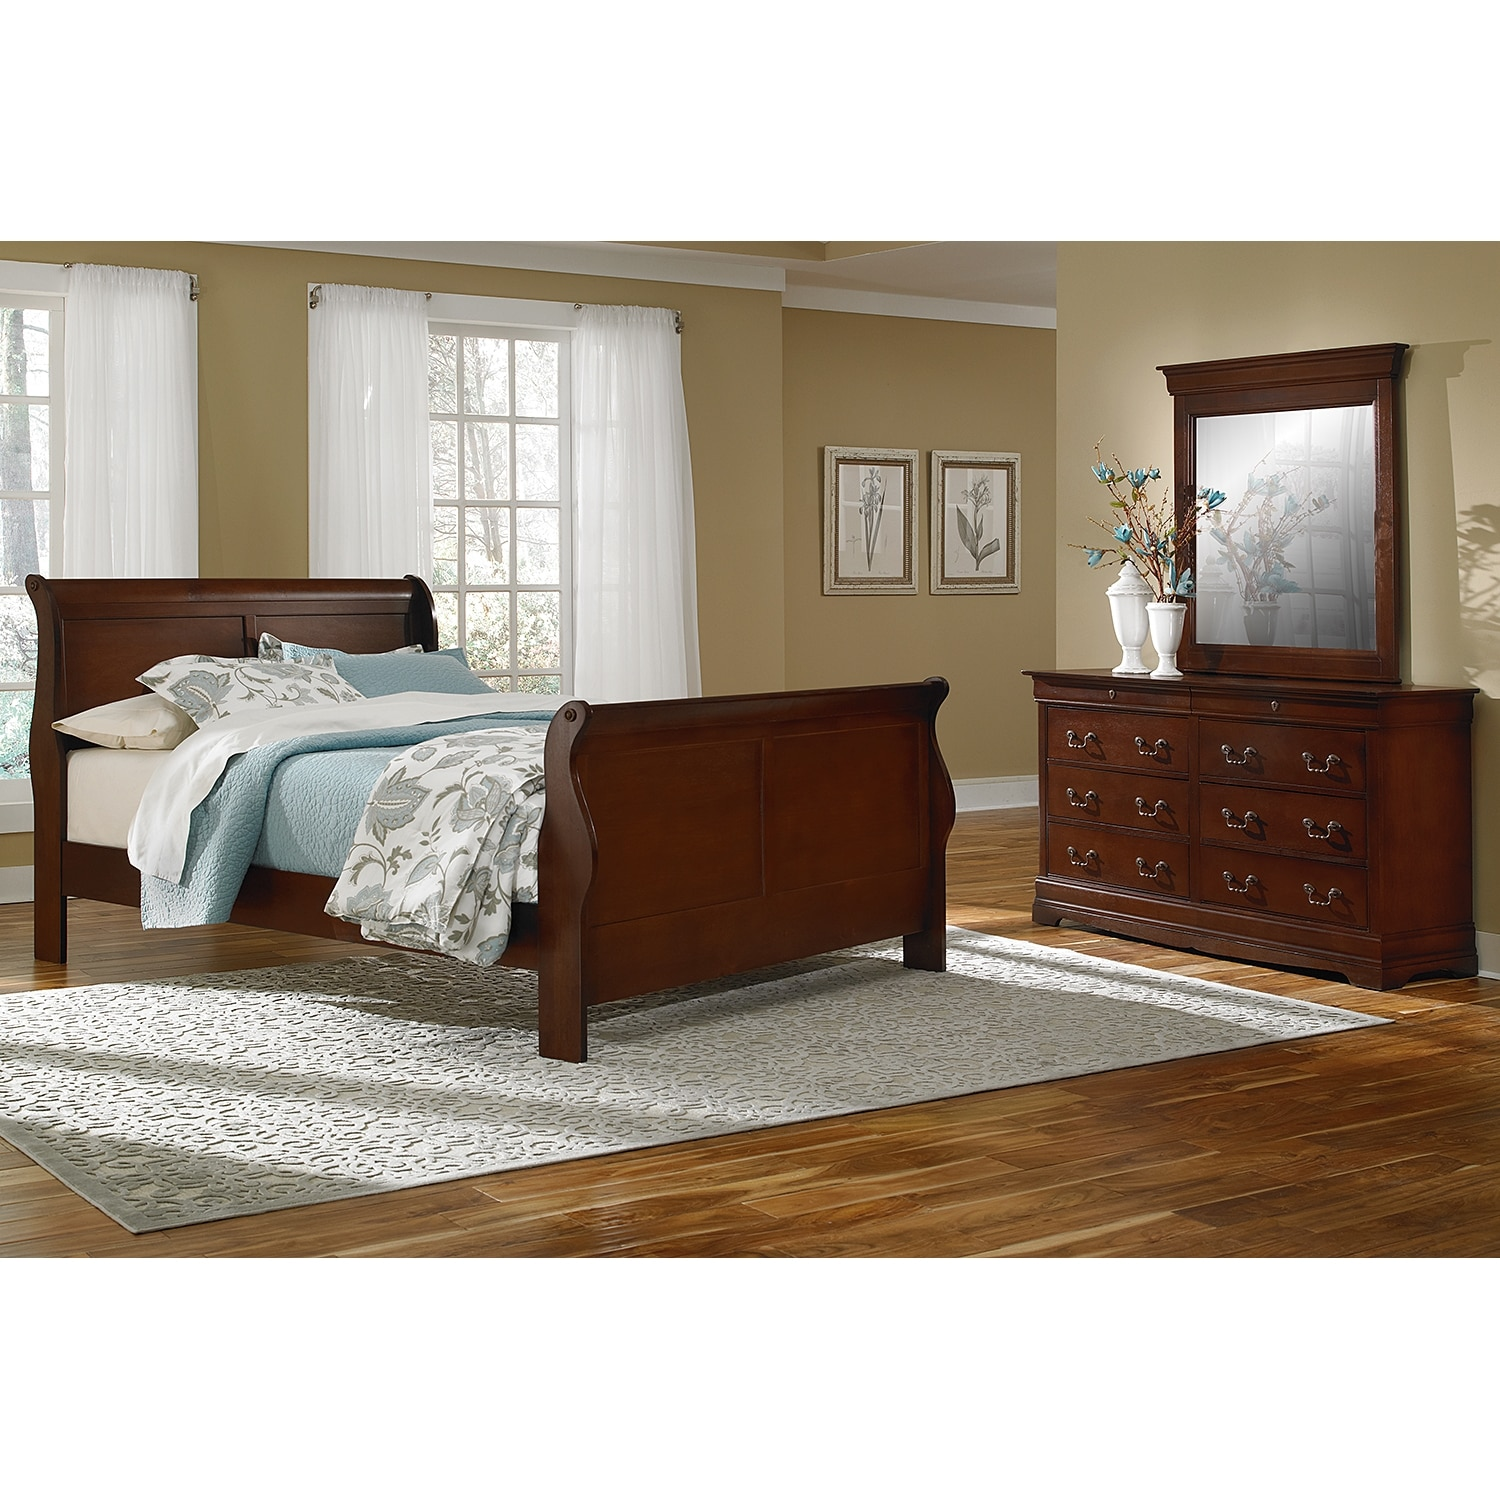 Neo Classic 5 Piece King Bedroom Set Cherry Value City Furniture